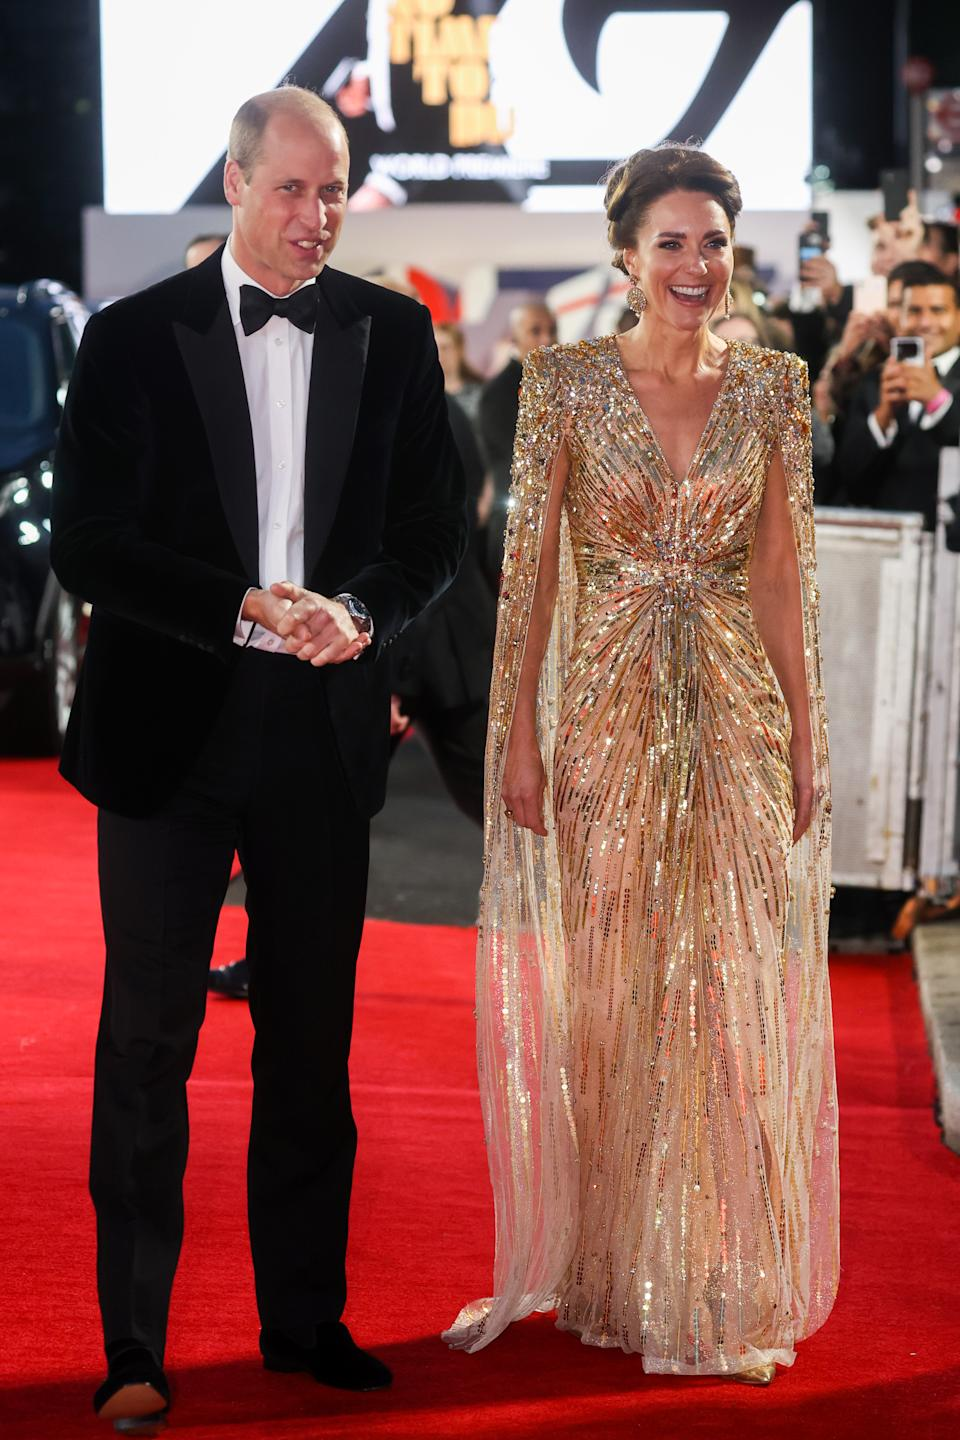 The Duchess of Cambridge stunned in a gold caped gown by Jenny Packham. (Getty Images)